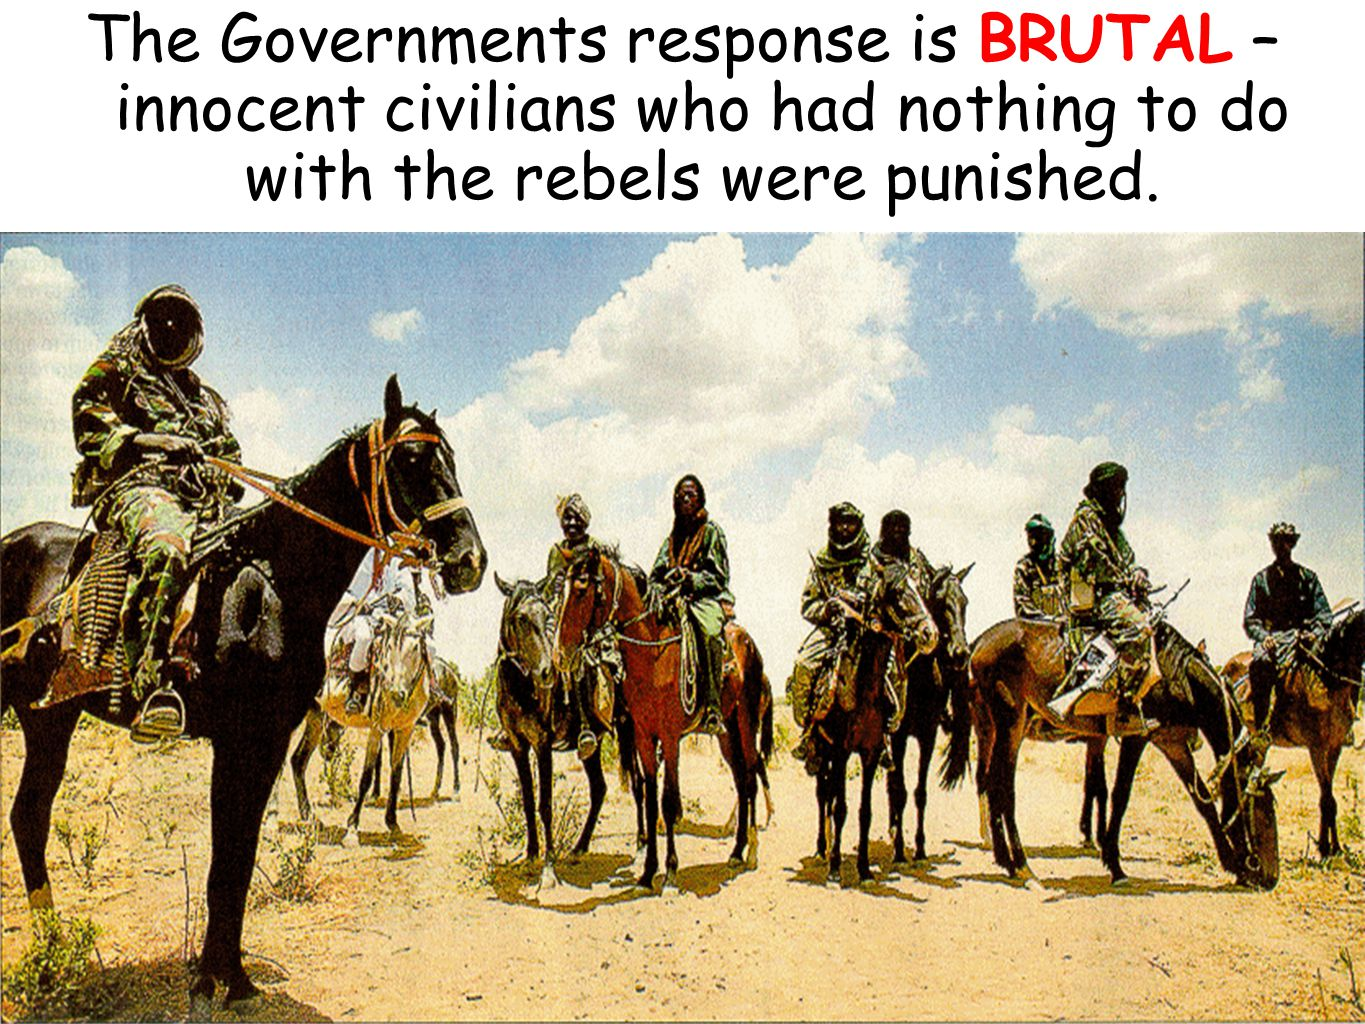 The Governments response is BRUTAL – innocent civilians who had nothing to do with the rebels were punished.